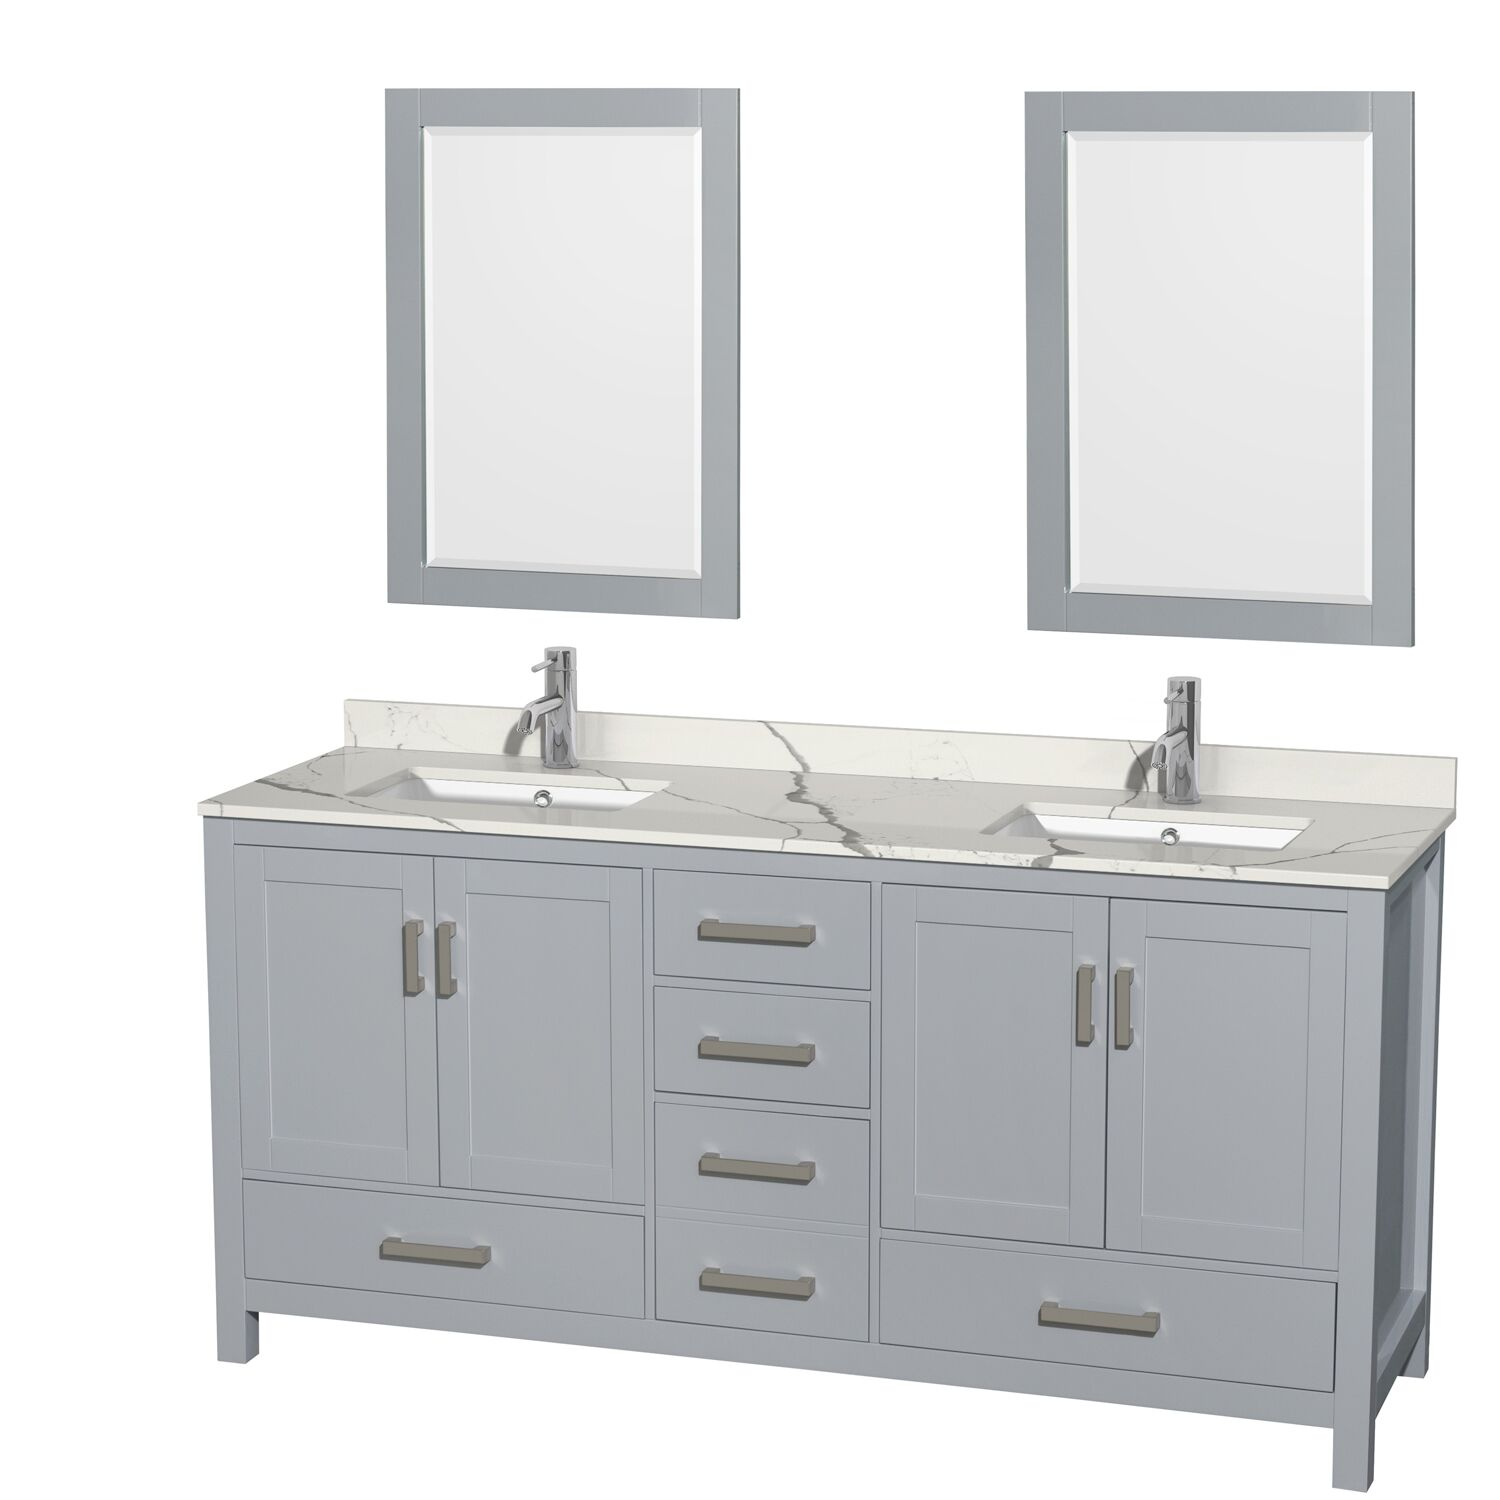 "72"" Double Bathroom Vanity with Color, Countertop, Mirror and Medicine Cabinet Options"